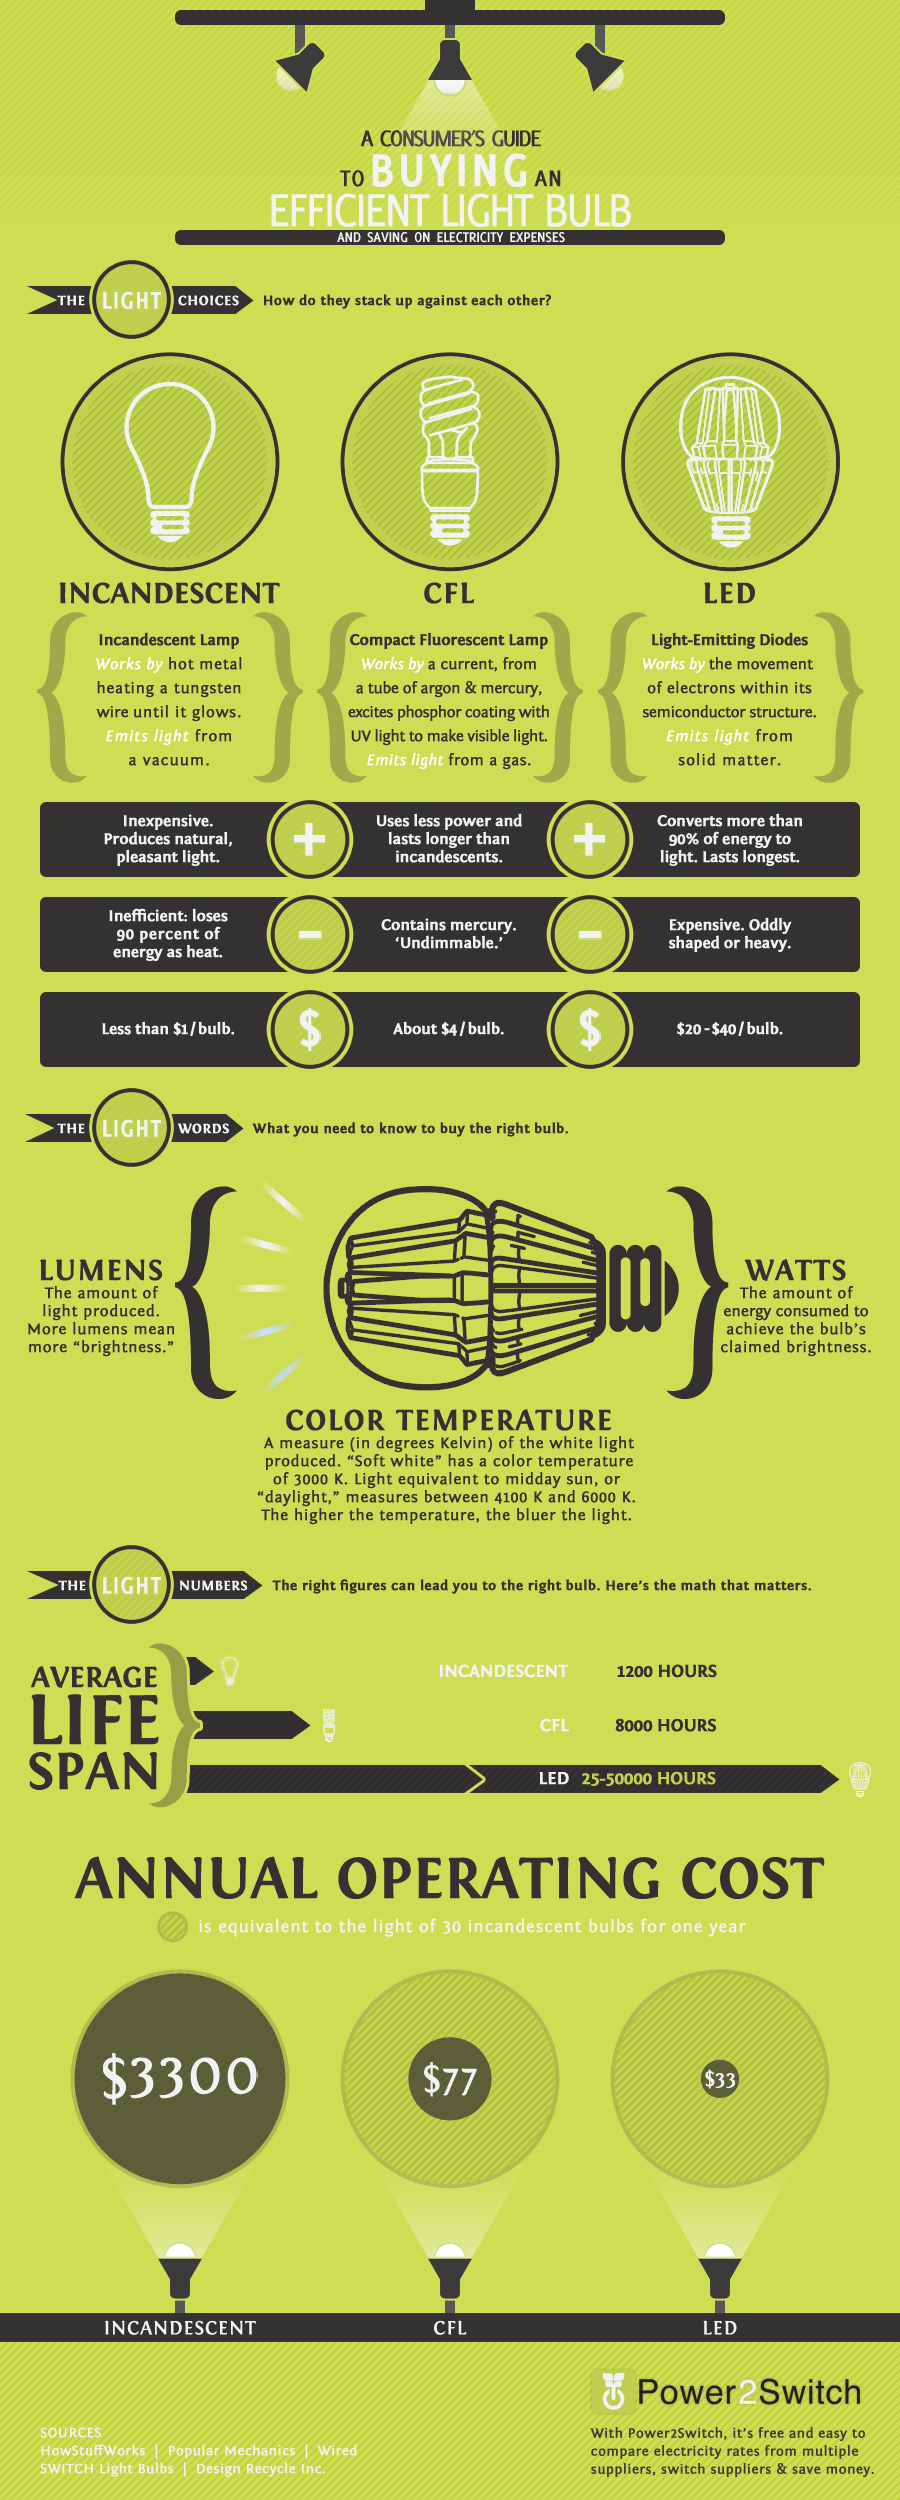 A Consumer's Guide To Buying An Efficient Light Bulb ...